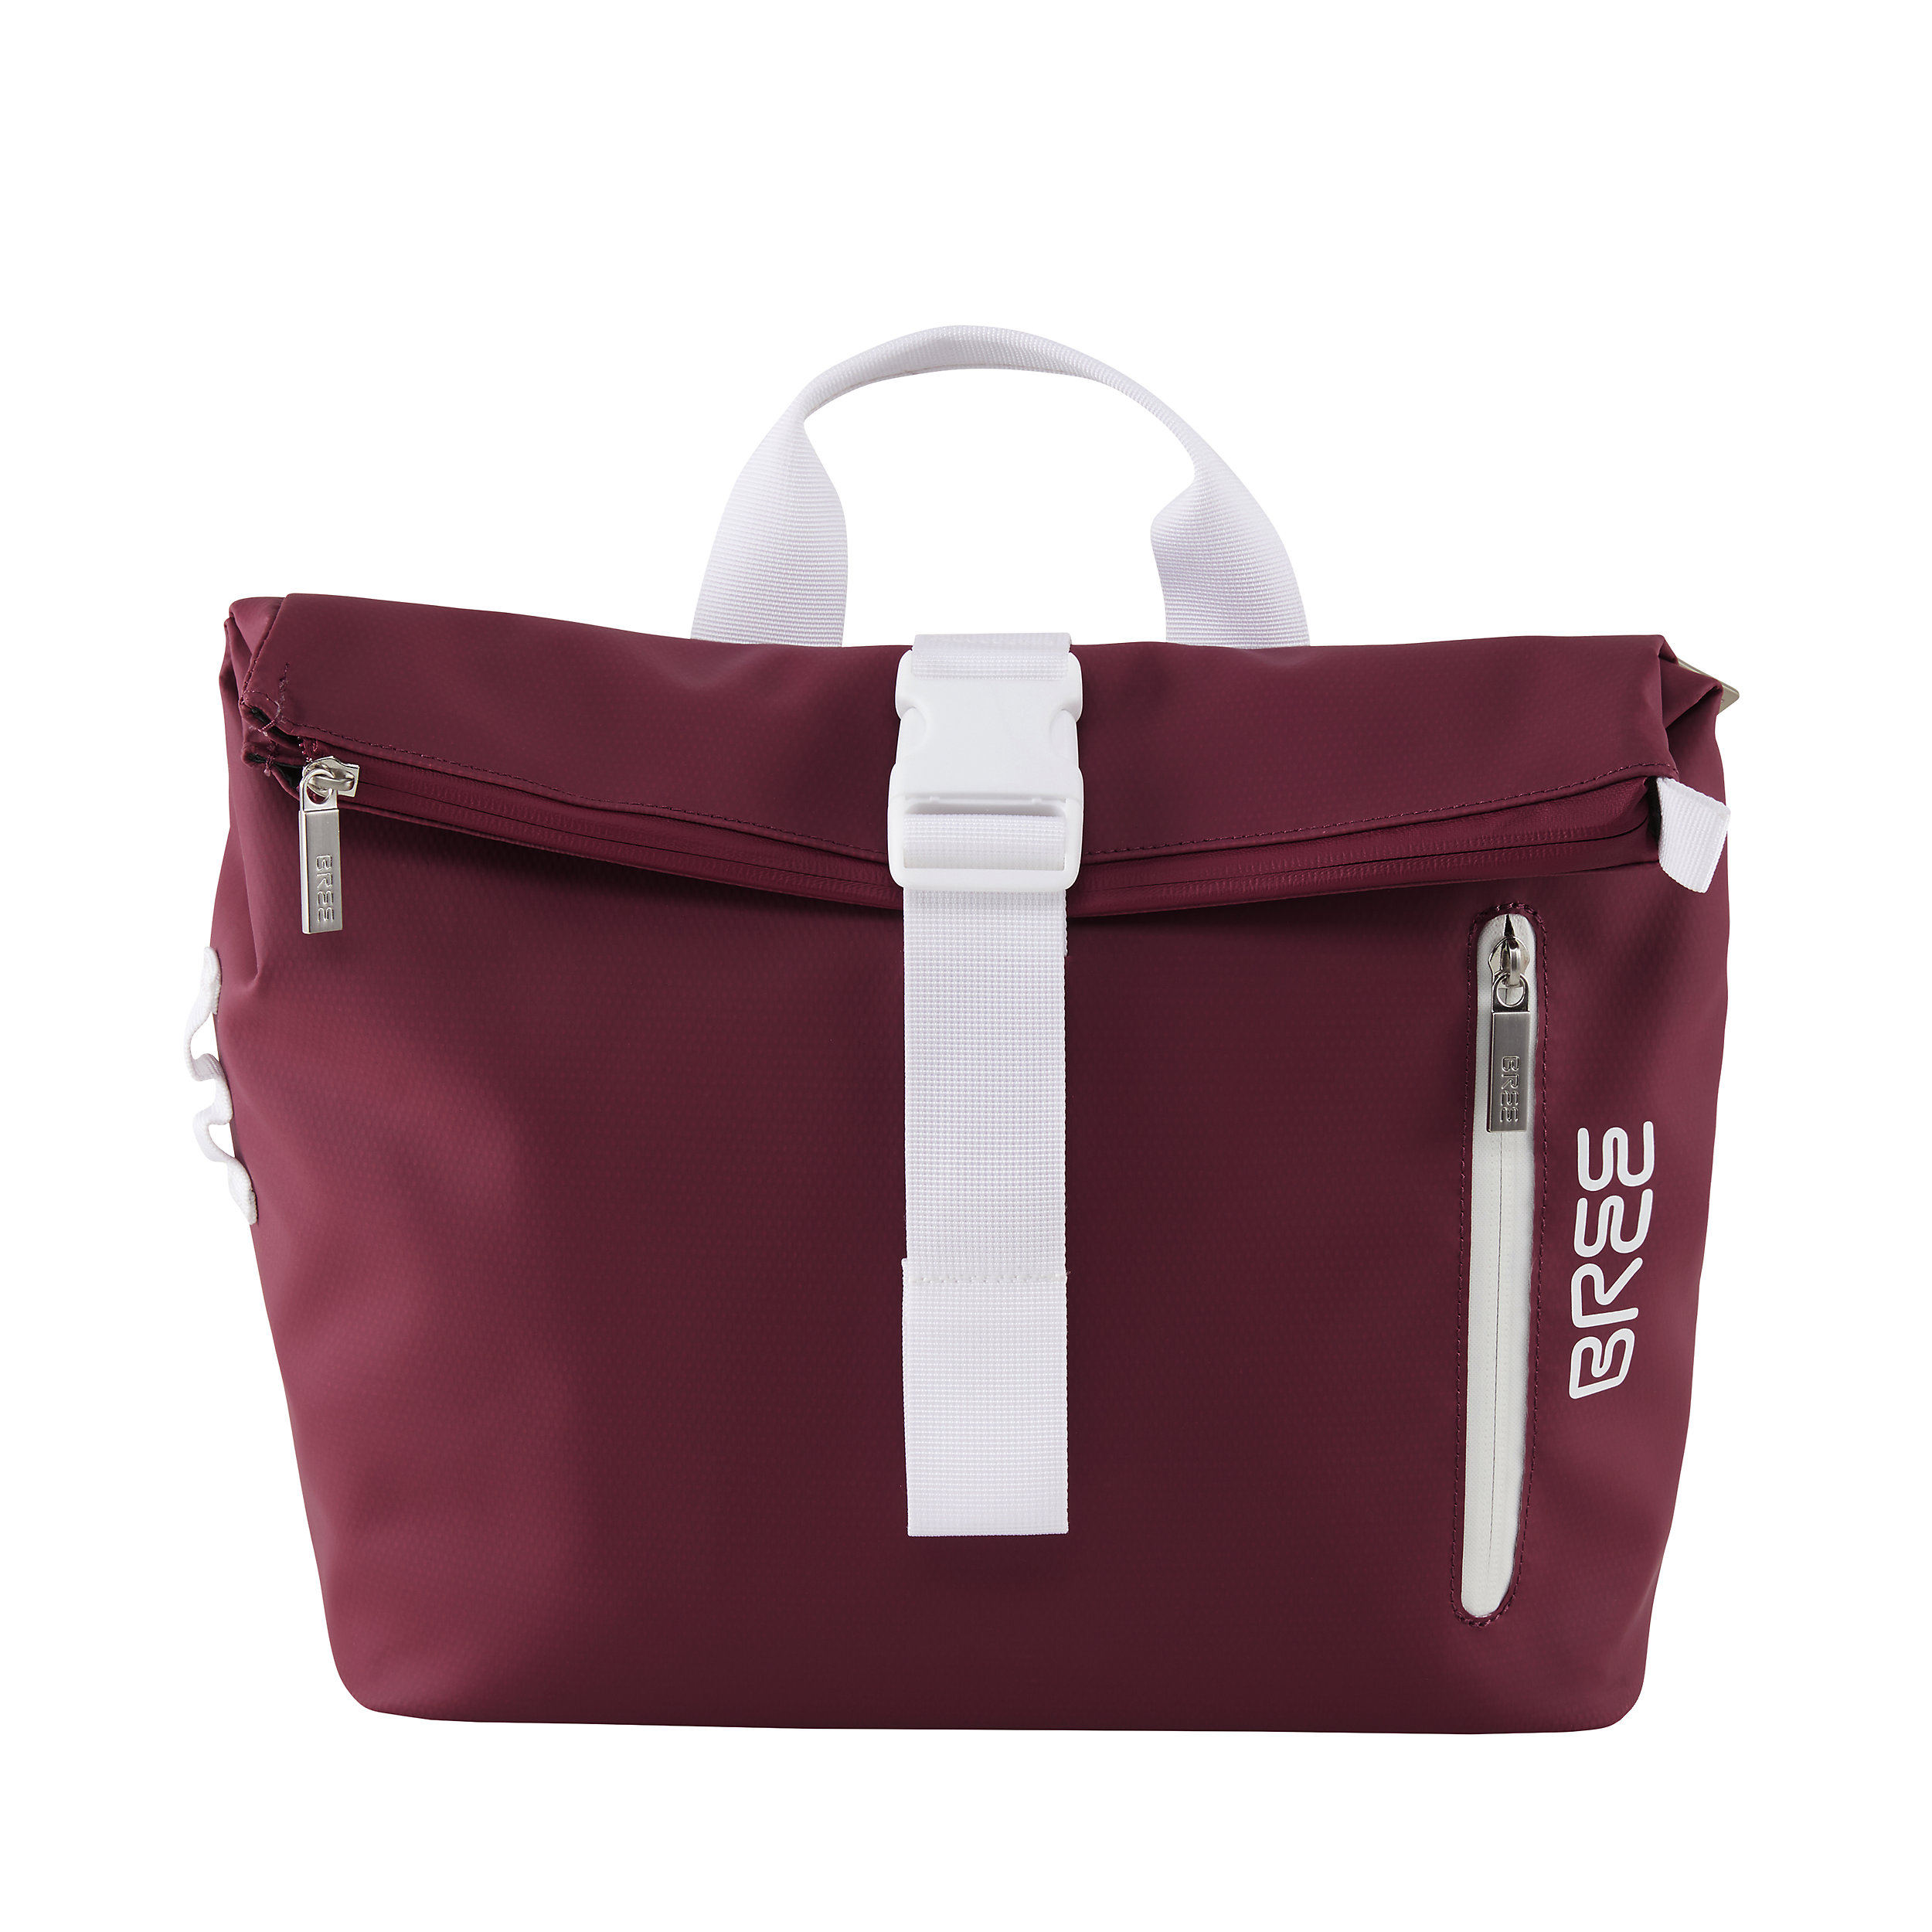 Messenger Bag S Punch 722 Punch 14 Liter